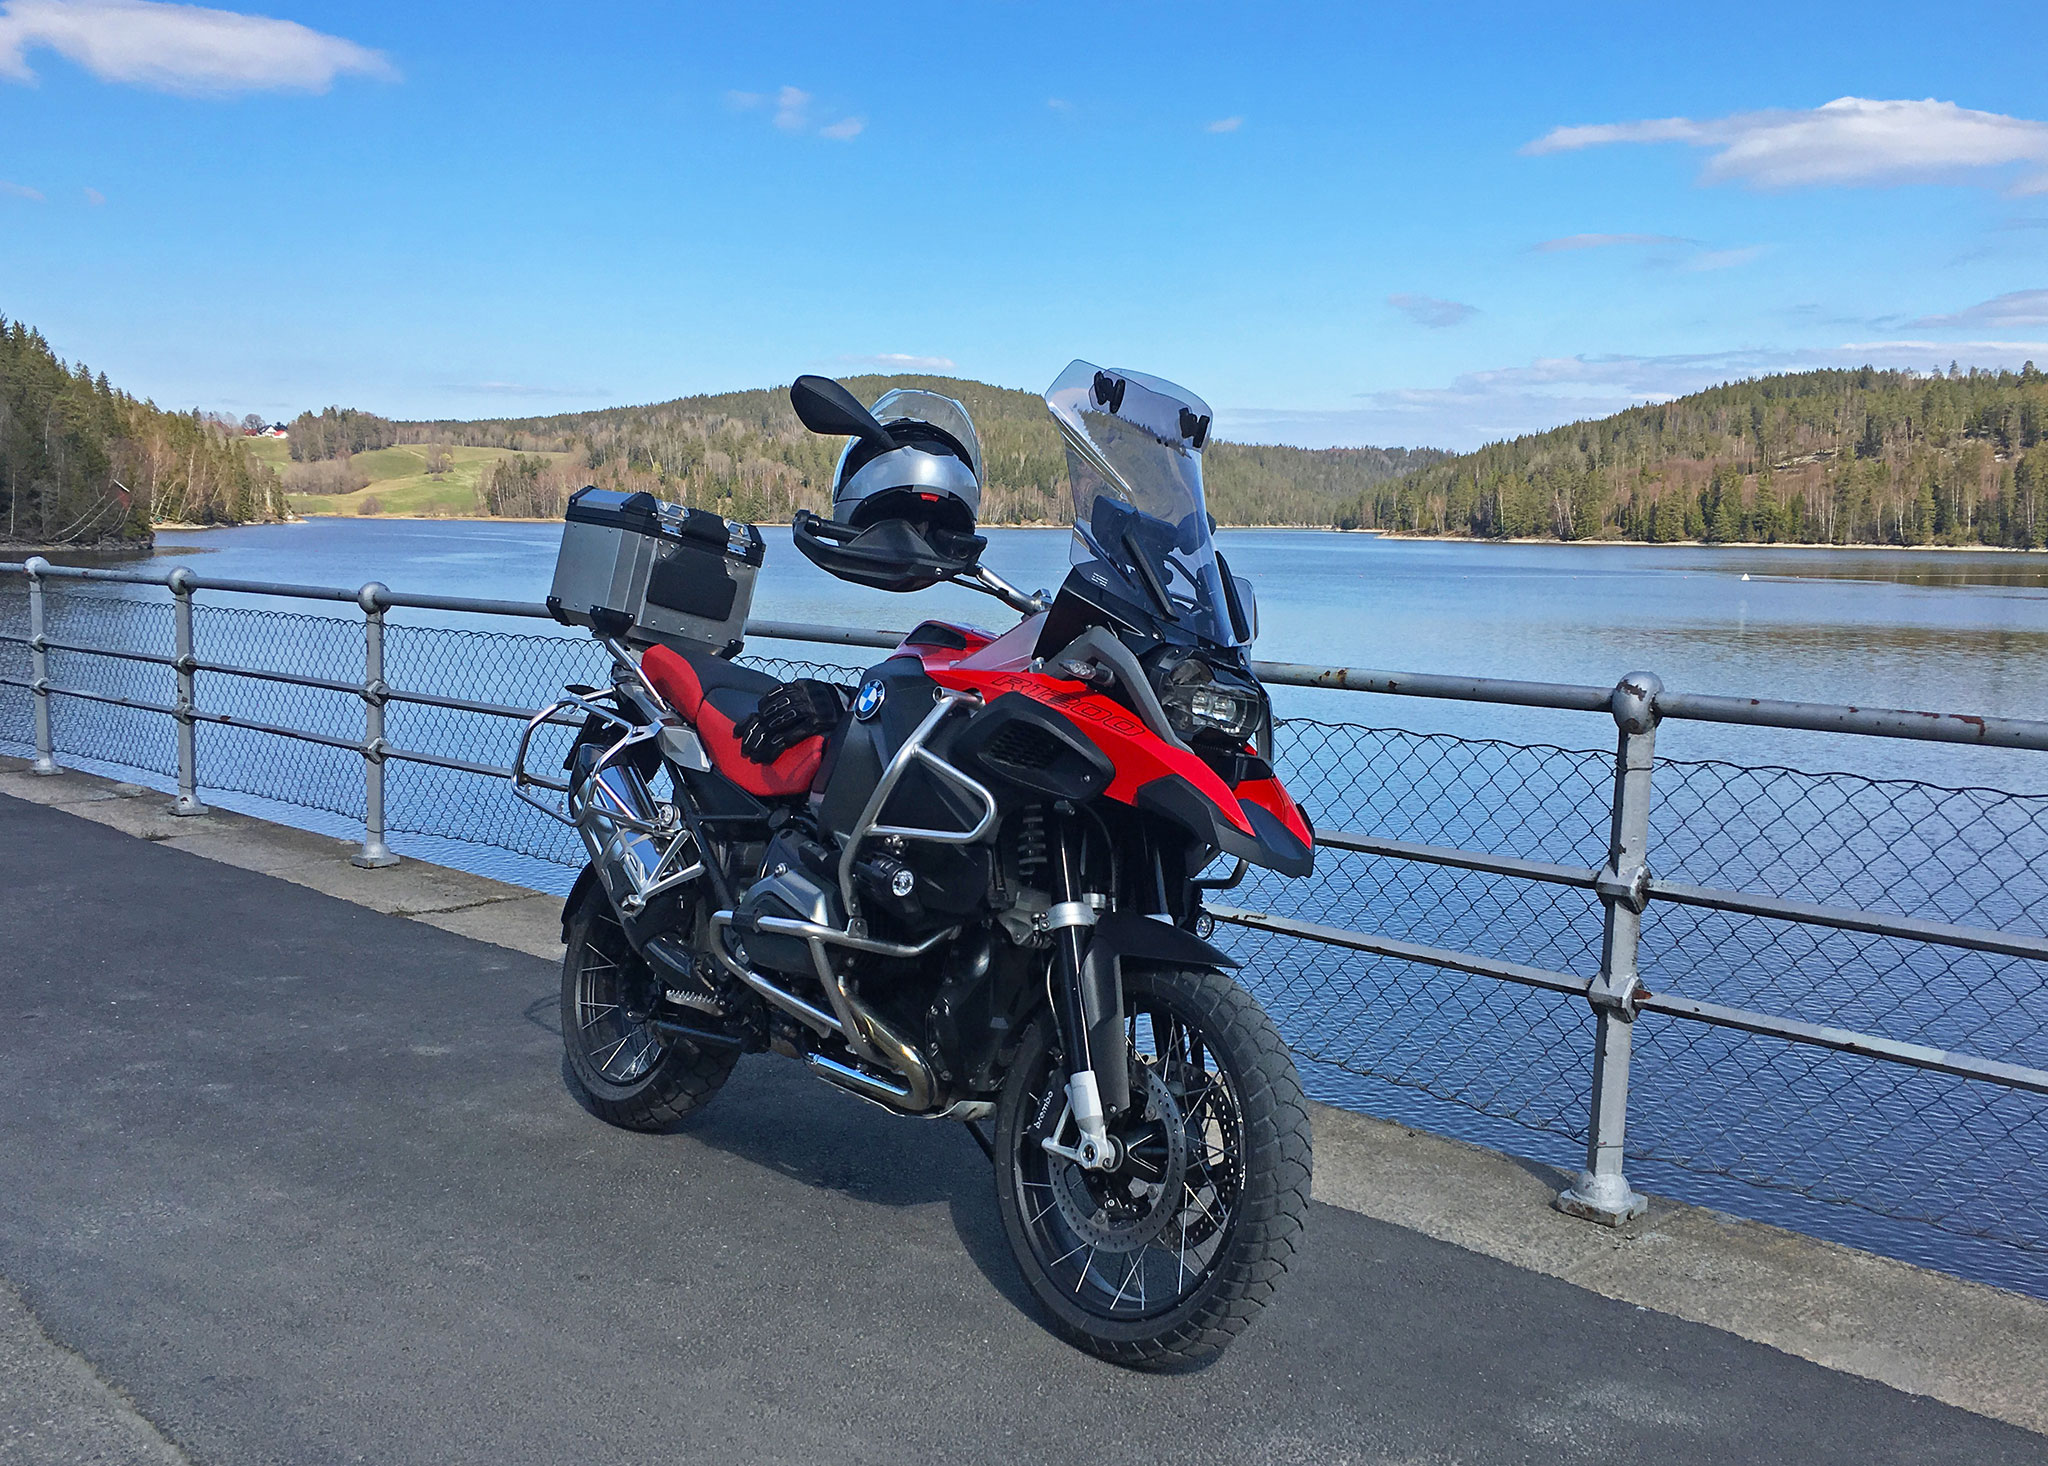 BMW GSA fitted with Michelin Anakee Adventure tires